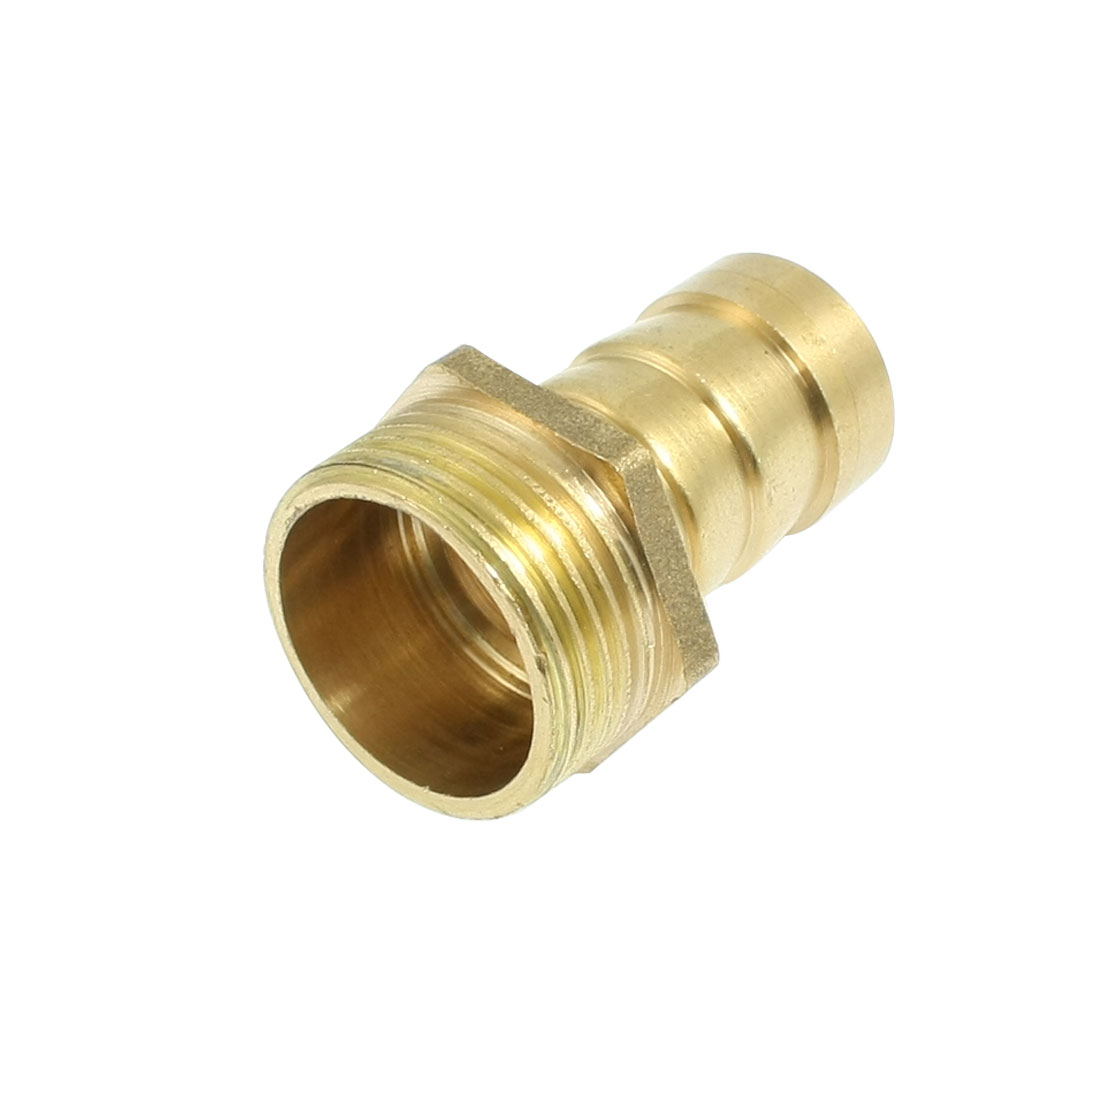 "3/4"" PT Threaded 1/2""PT Pneumatic Air Gas Hose Barbed Fitting Coupling"